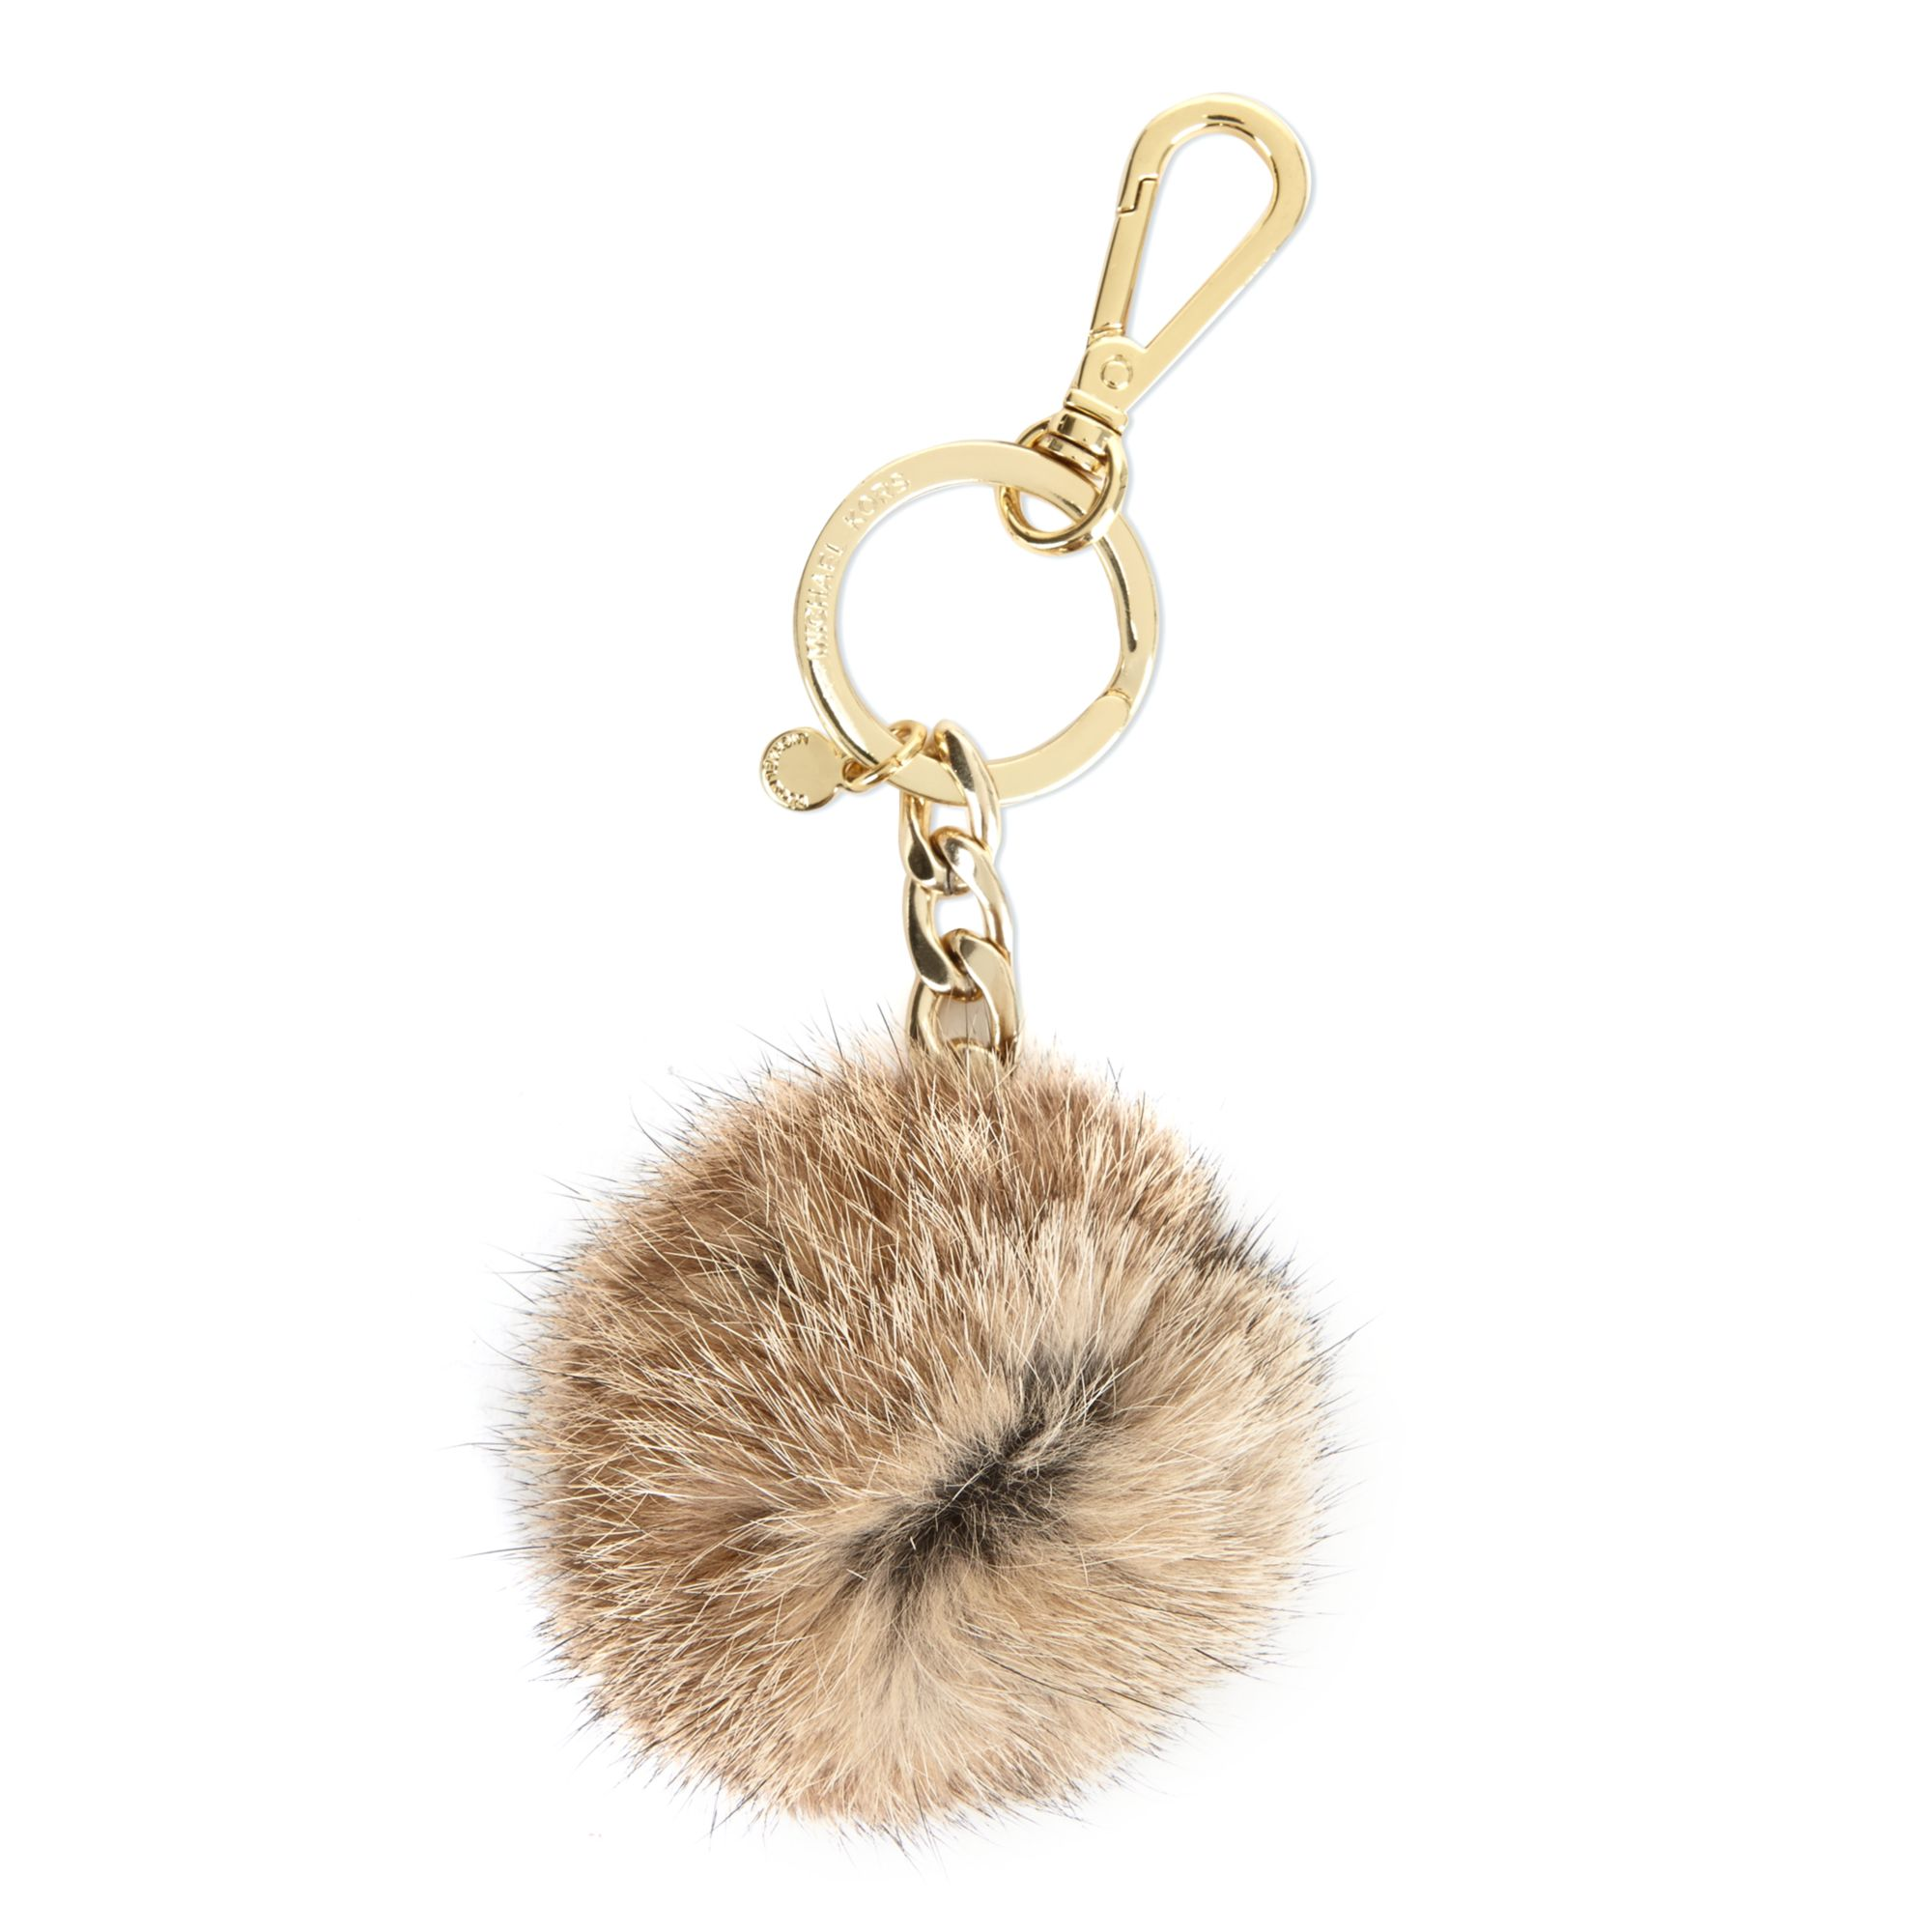 Lyst - Michael Kors Fur Pom Pom Key Ring in Natural 313b2f383